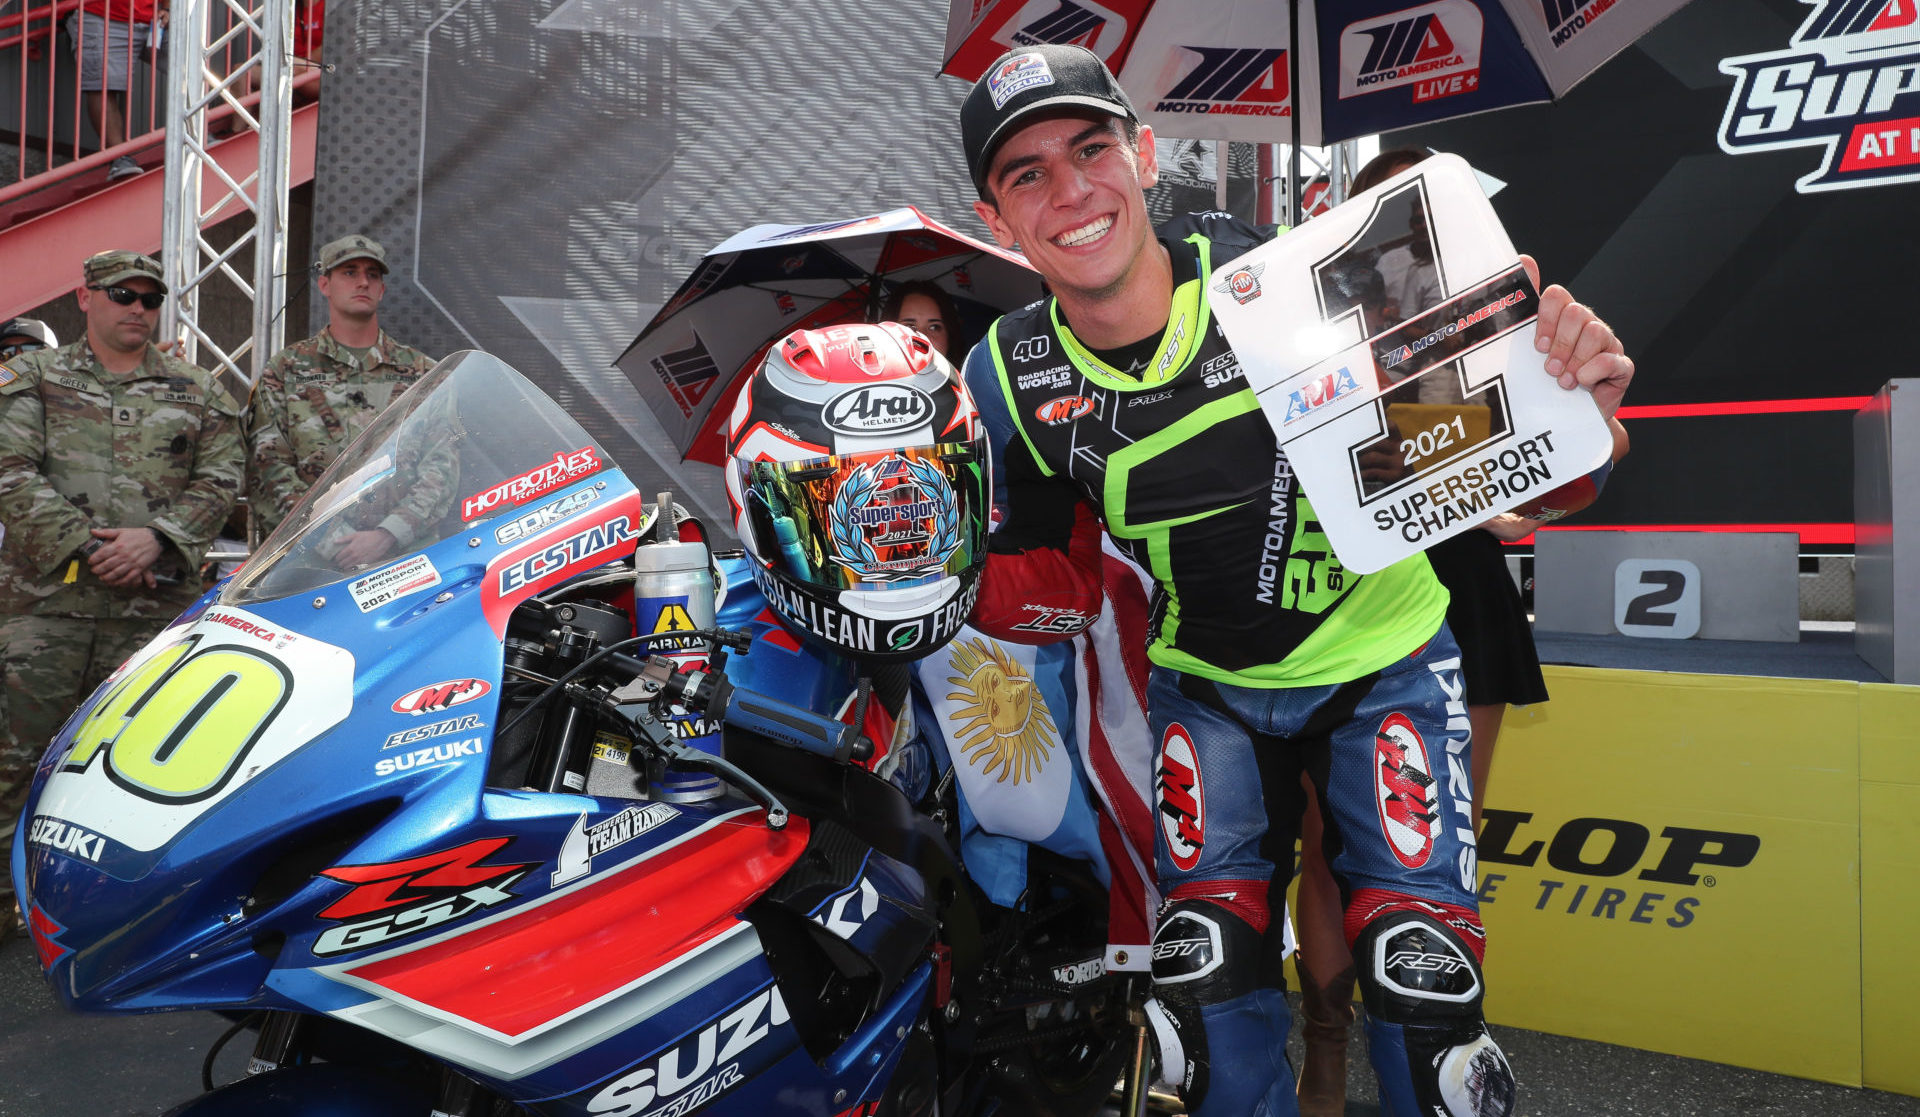 Sean Dylan Kelly, the 2021 MotoAmerica Supersport Champion, will be racing in the Moto2 World Championship through 2023. Photo by Brian J. Nelson.